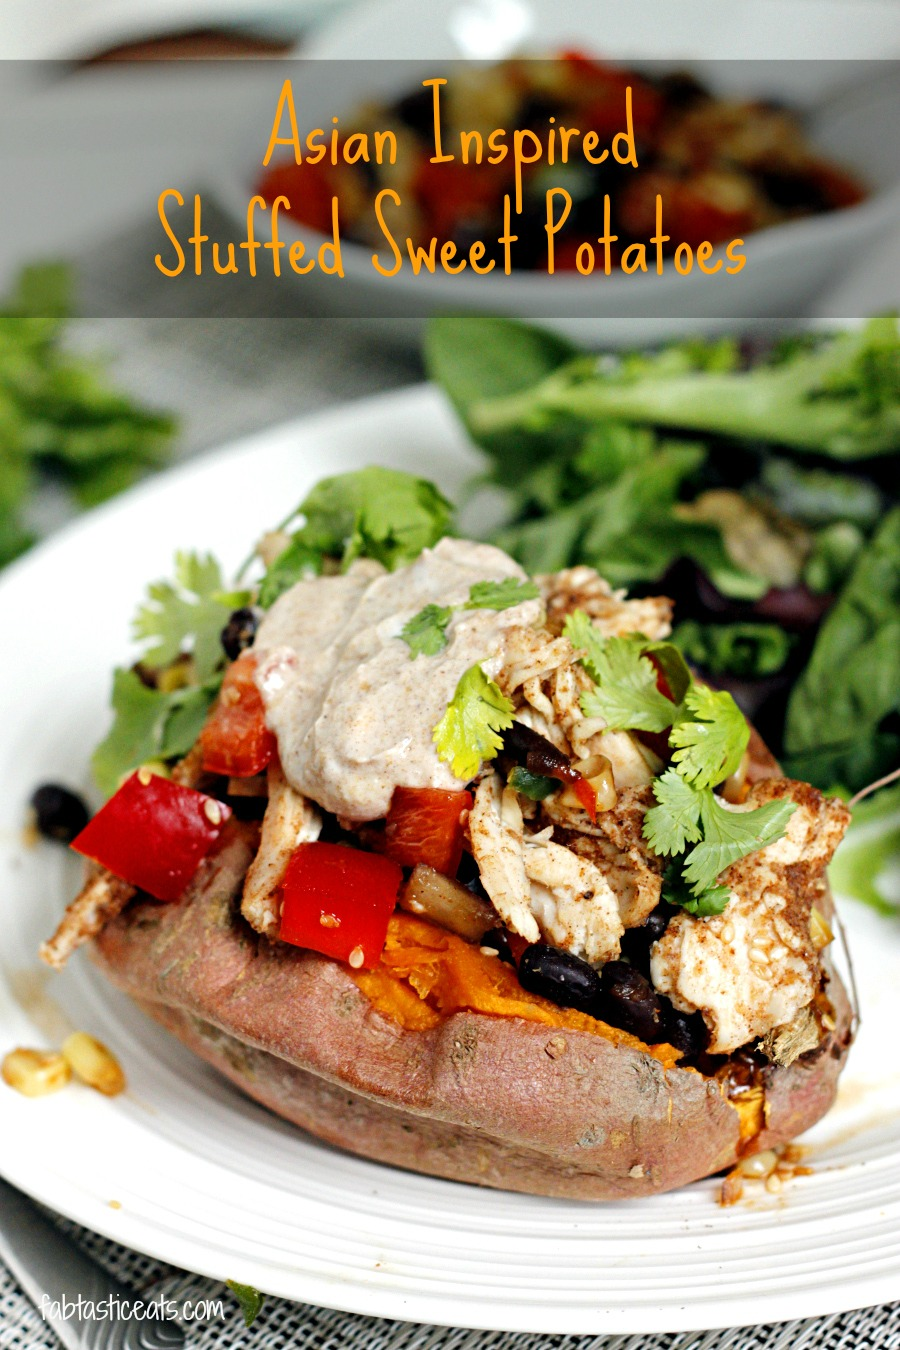 Asian Inspired Stuffed Sweet Potatoes